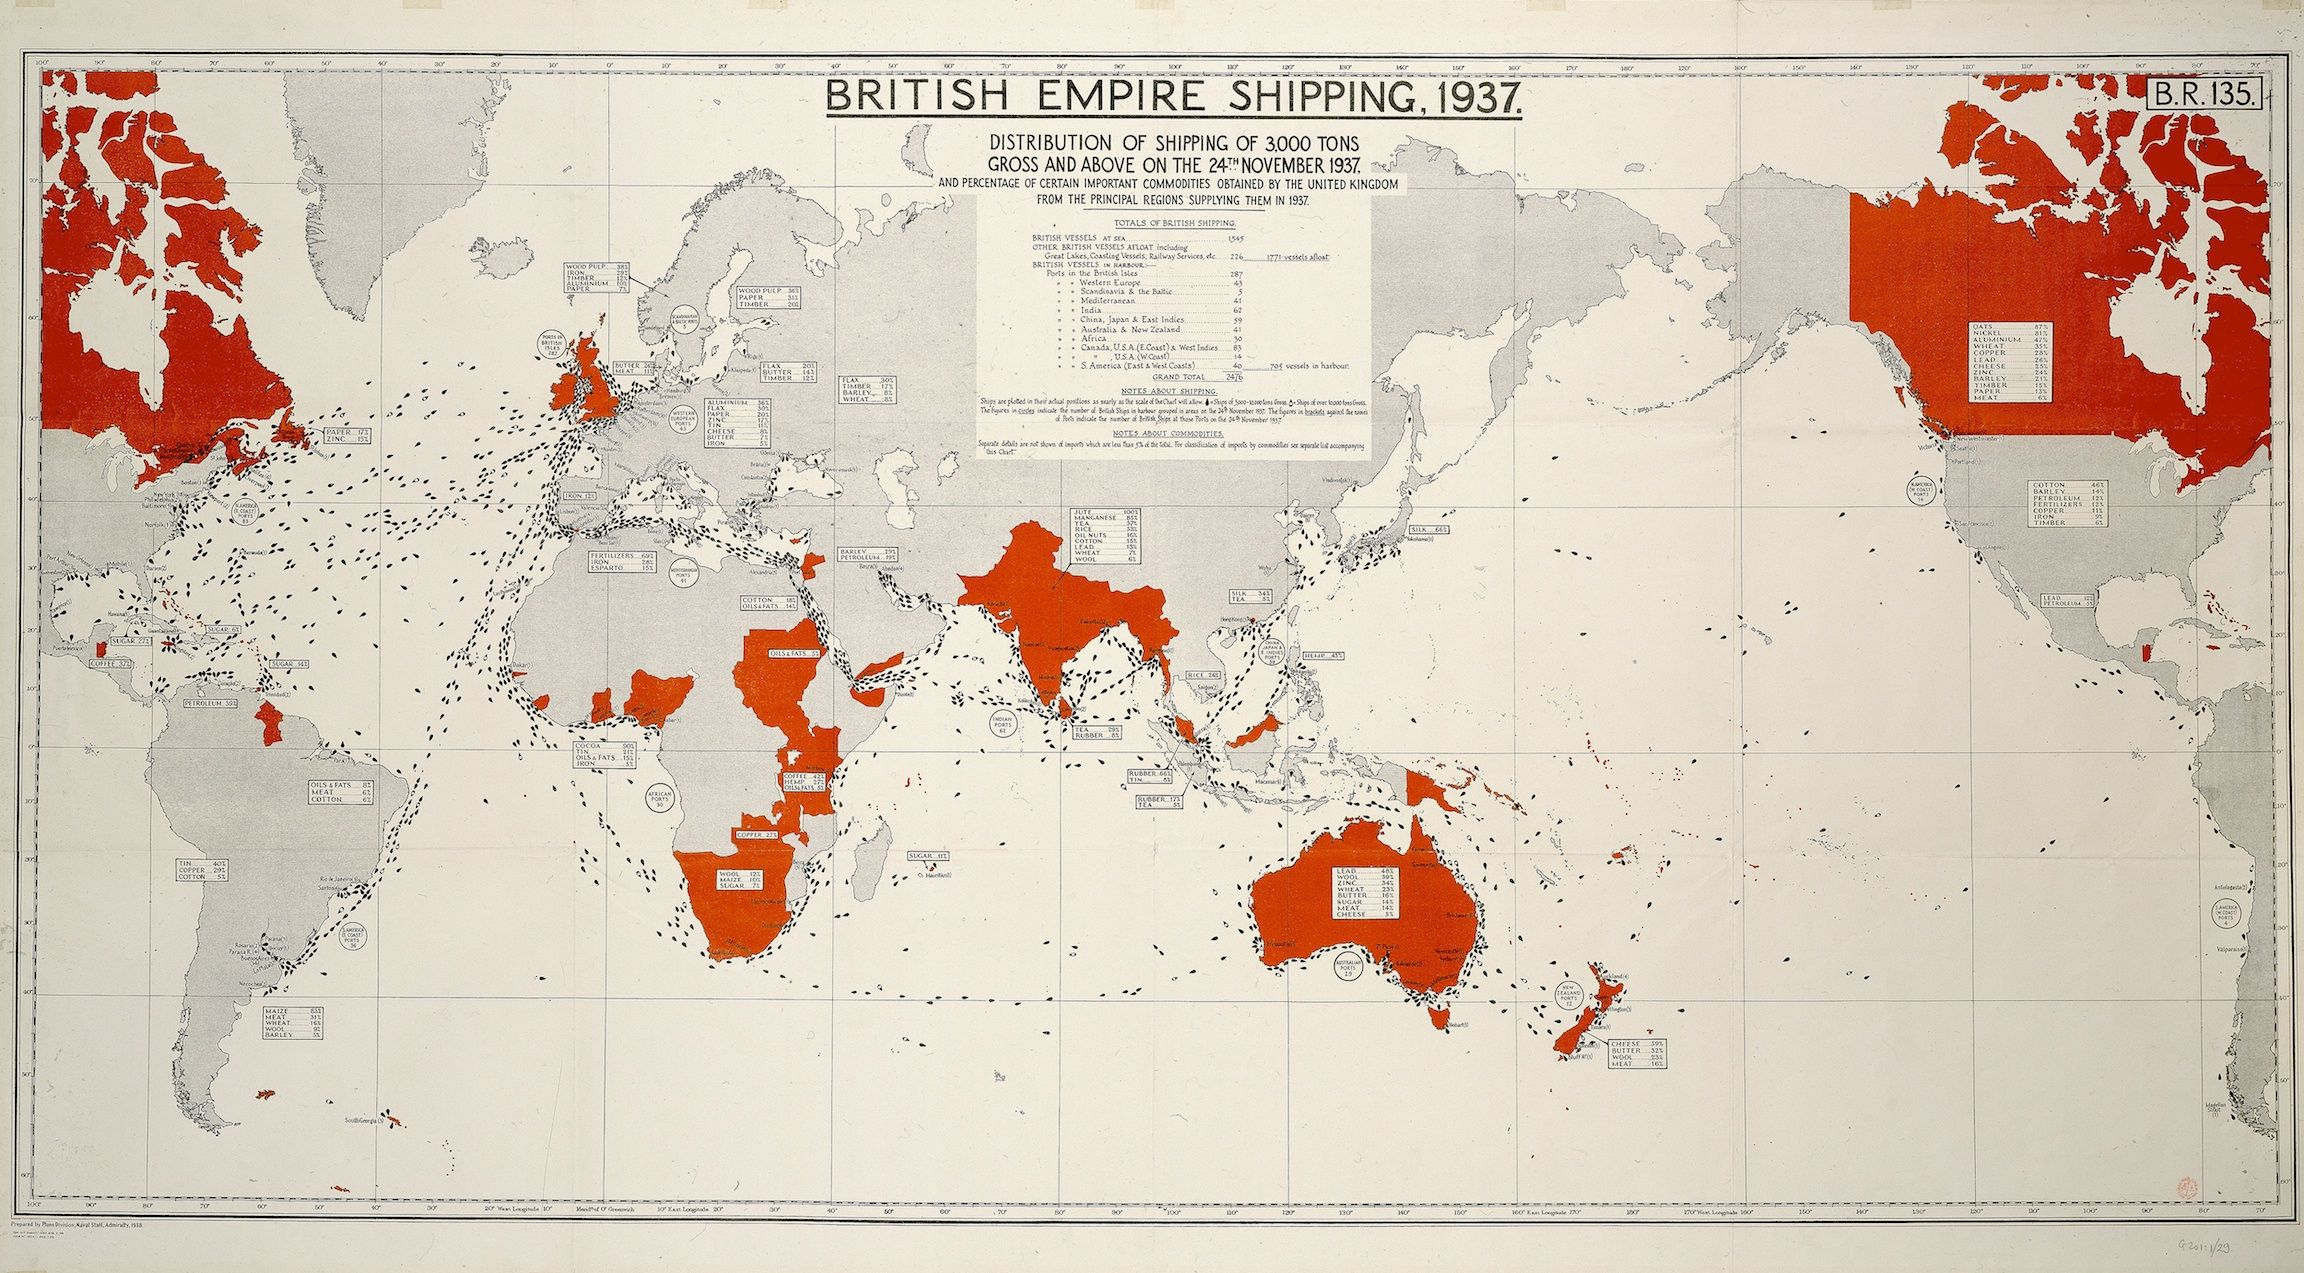 Murals of British Empire Shipping Map by National Maritime ... on sailing map, aerospace map, tax map, world map, marketing map, global logistics map, fish farming map, trucking map, exporting map, ngo map, ocean trade lanes map, star trek map, personalization map, fishing map, manifesting map, biotechnology map, warehouse map, fisheries map, global sales map, national sales map,